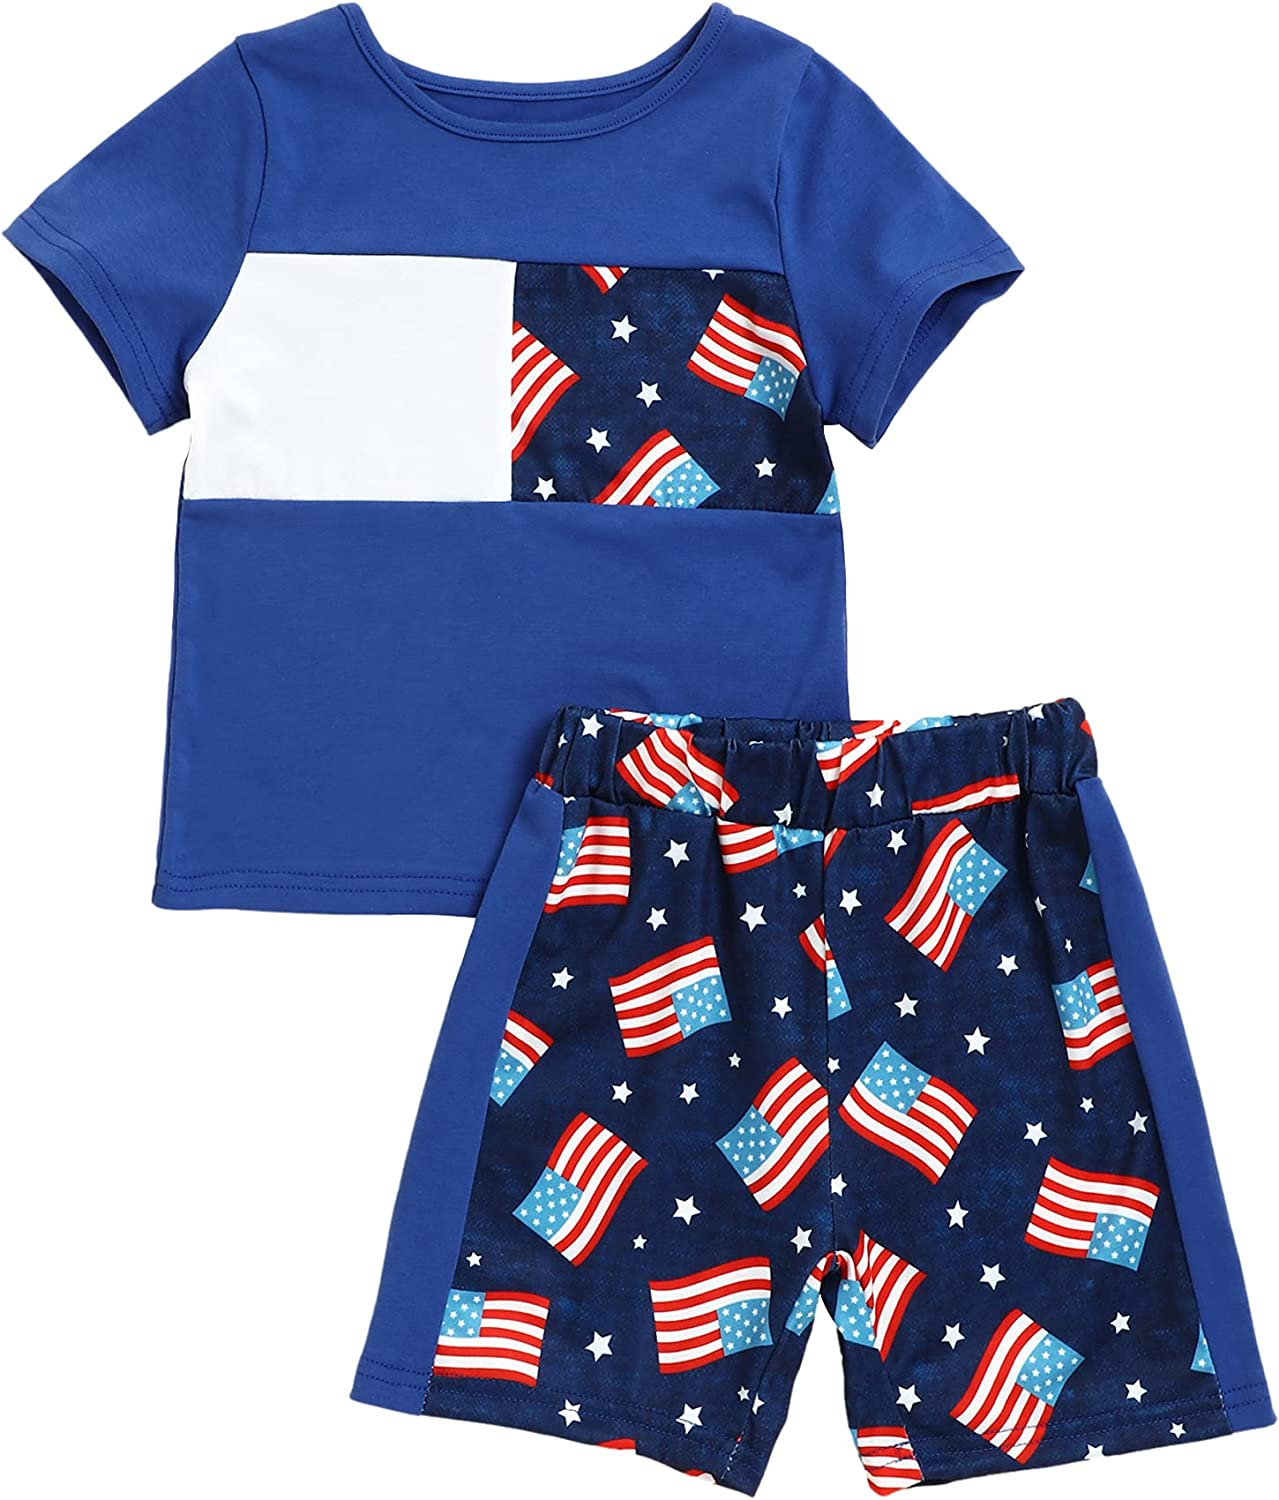 4th of July Outfits Infant Toddler Boy Summer Clothes Sleeveless Vest Top American Flag Print Shorts Outfit